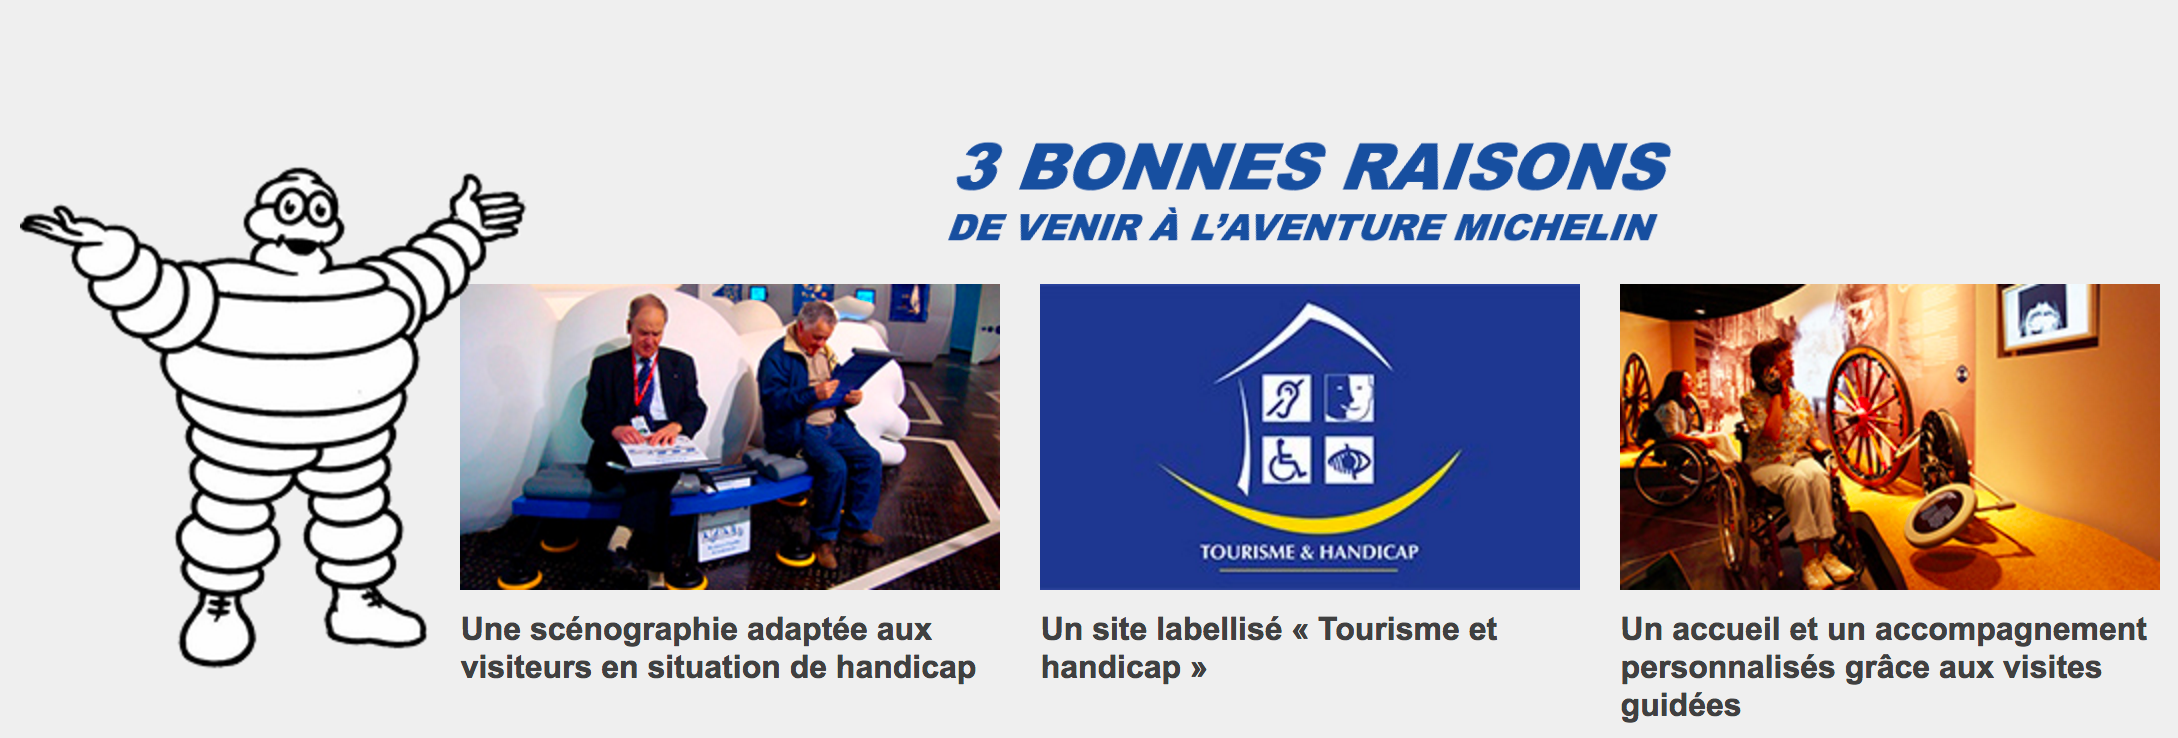 handicap-aventure-michelin